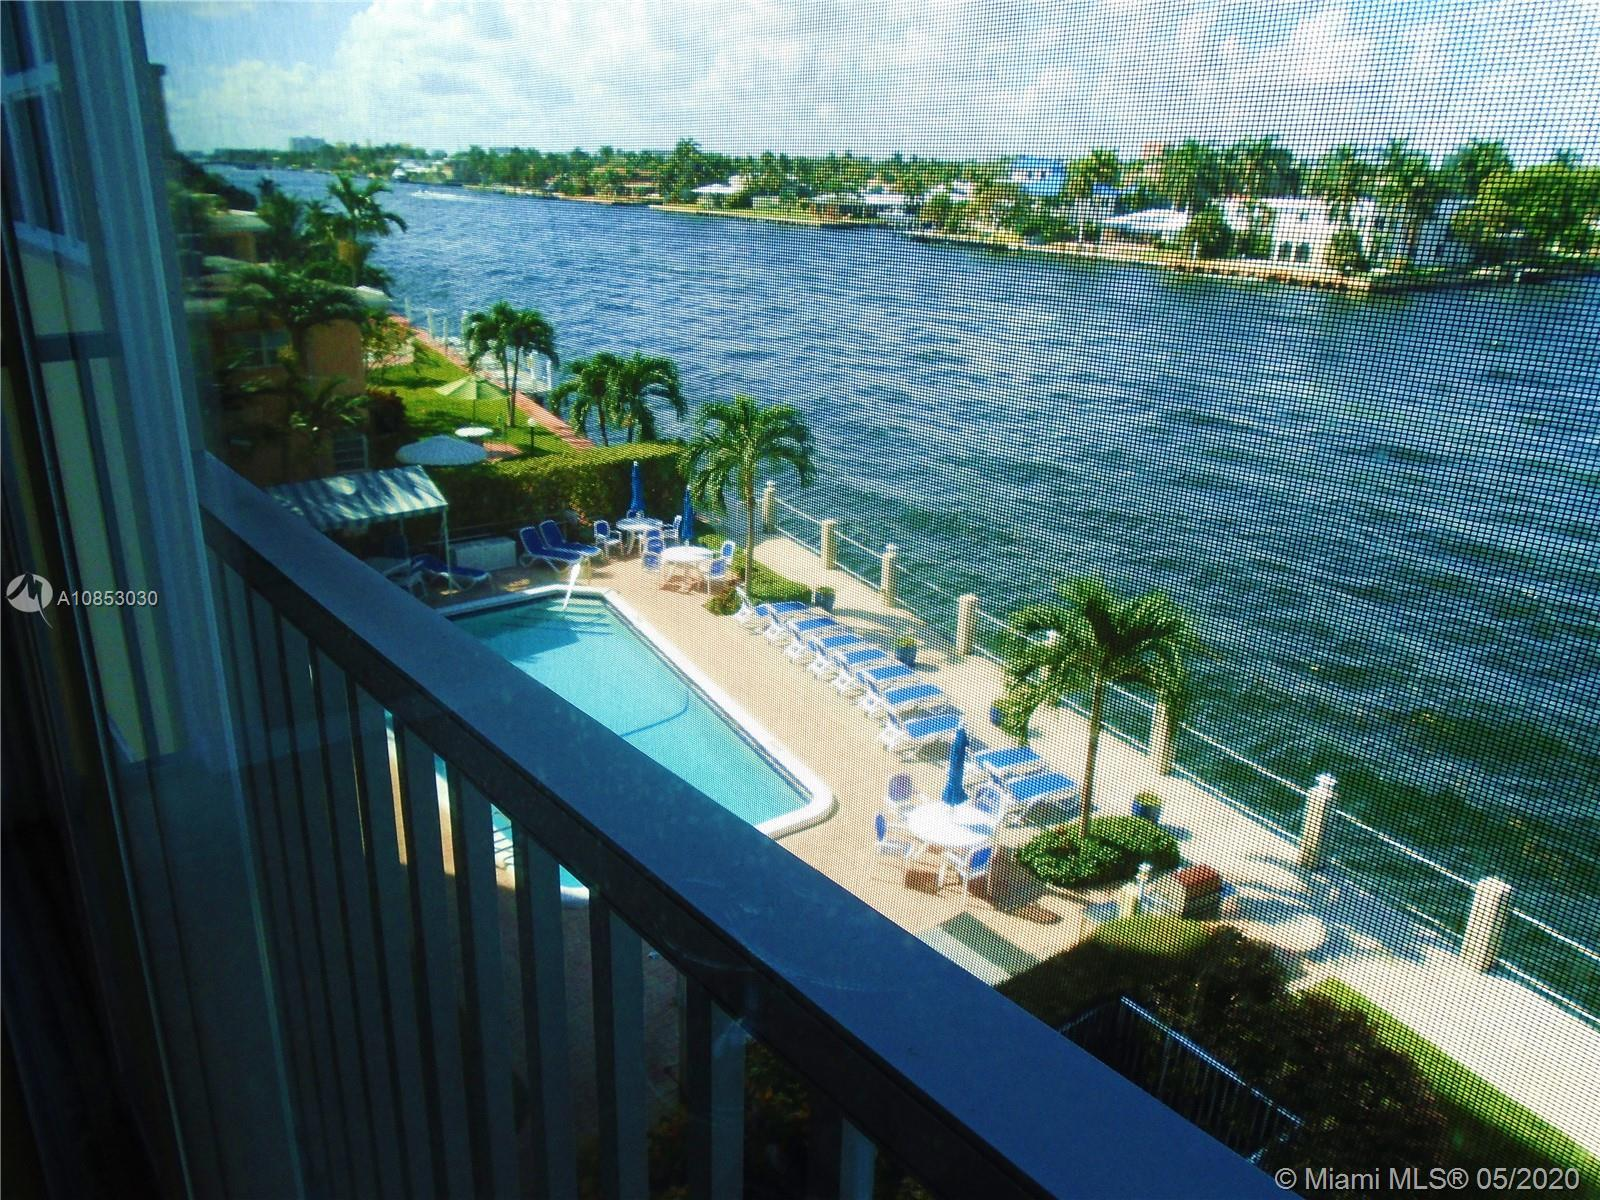 LIVE SHOWINGS AVAILABLE, VIRTUAL TOUR! PRIVATE UPSCALE RESIDENCE, 41 UNITS IN TOTAL! BOUTIQUE CONDO,